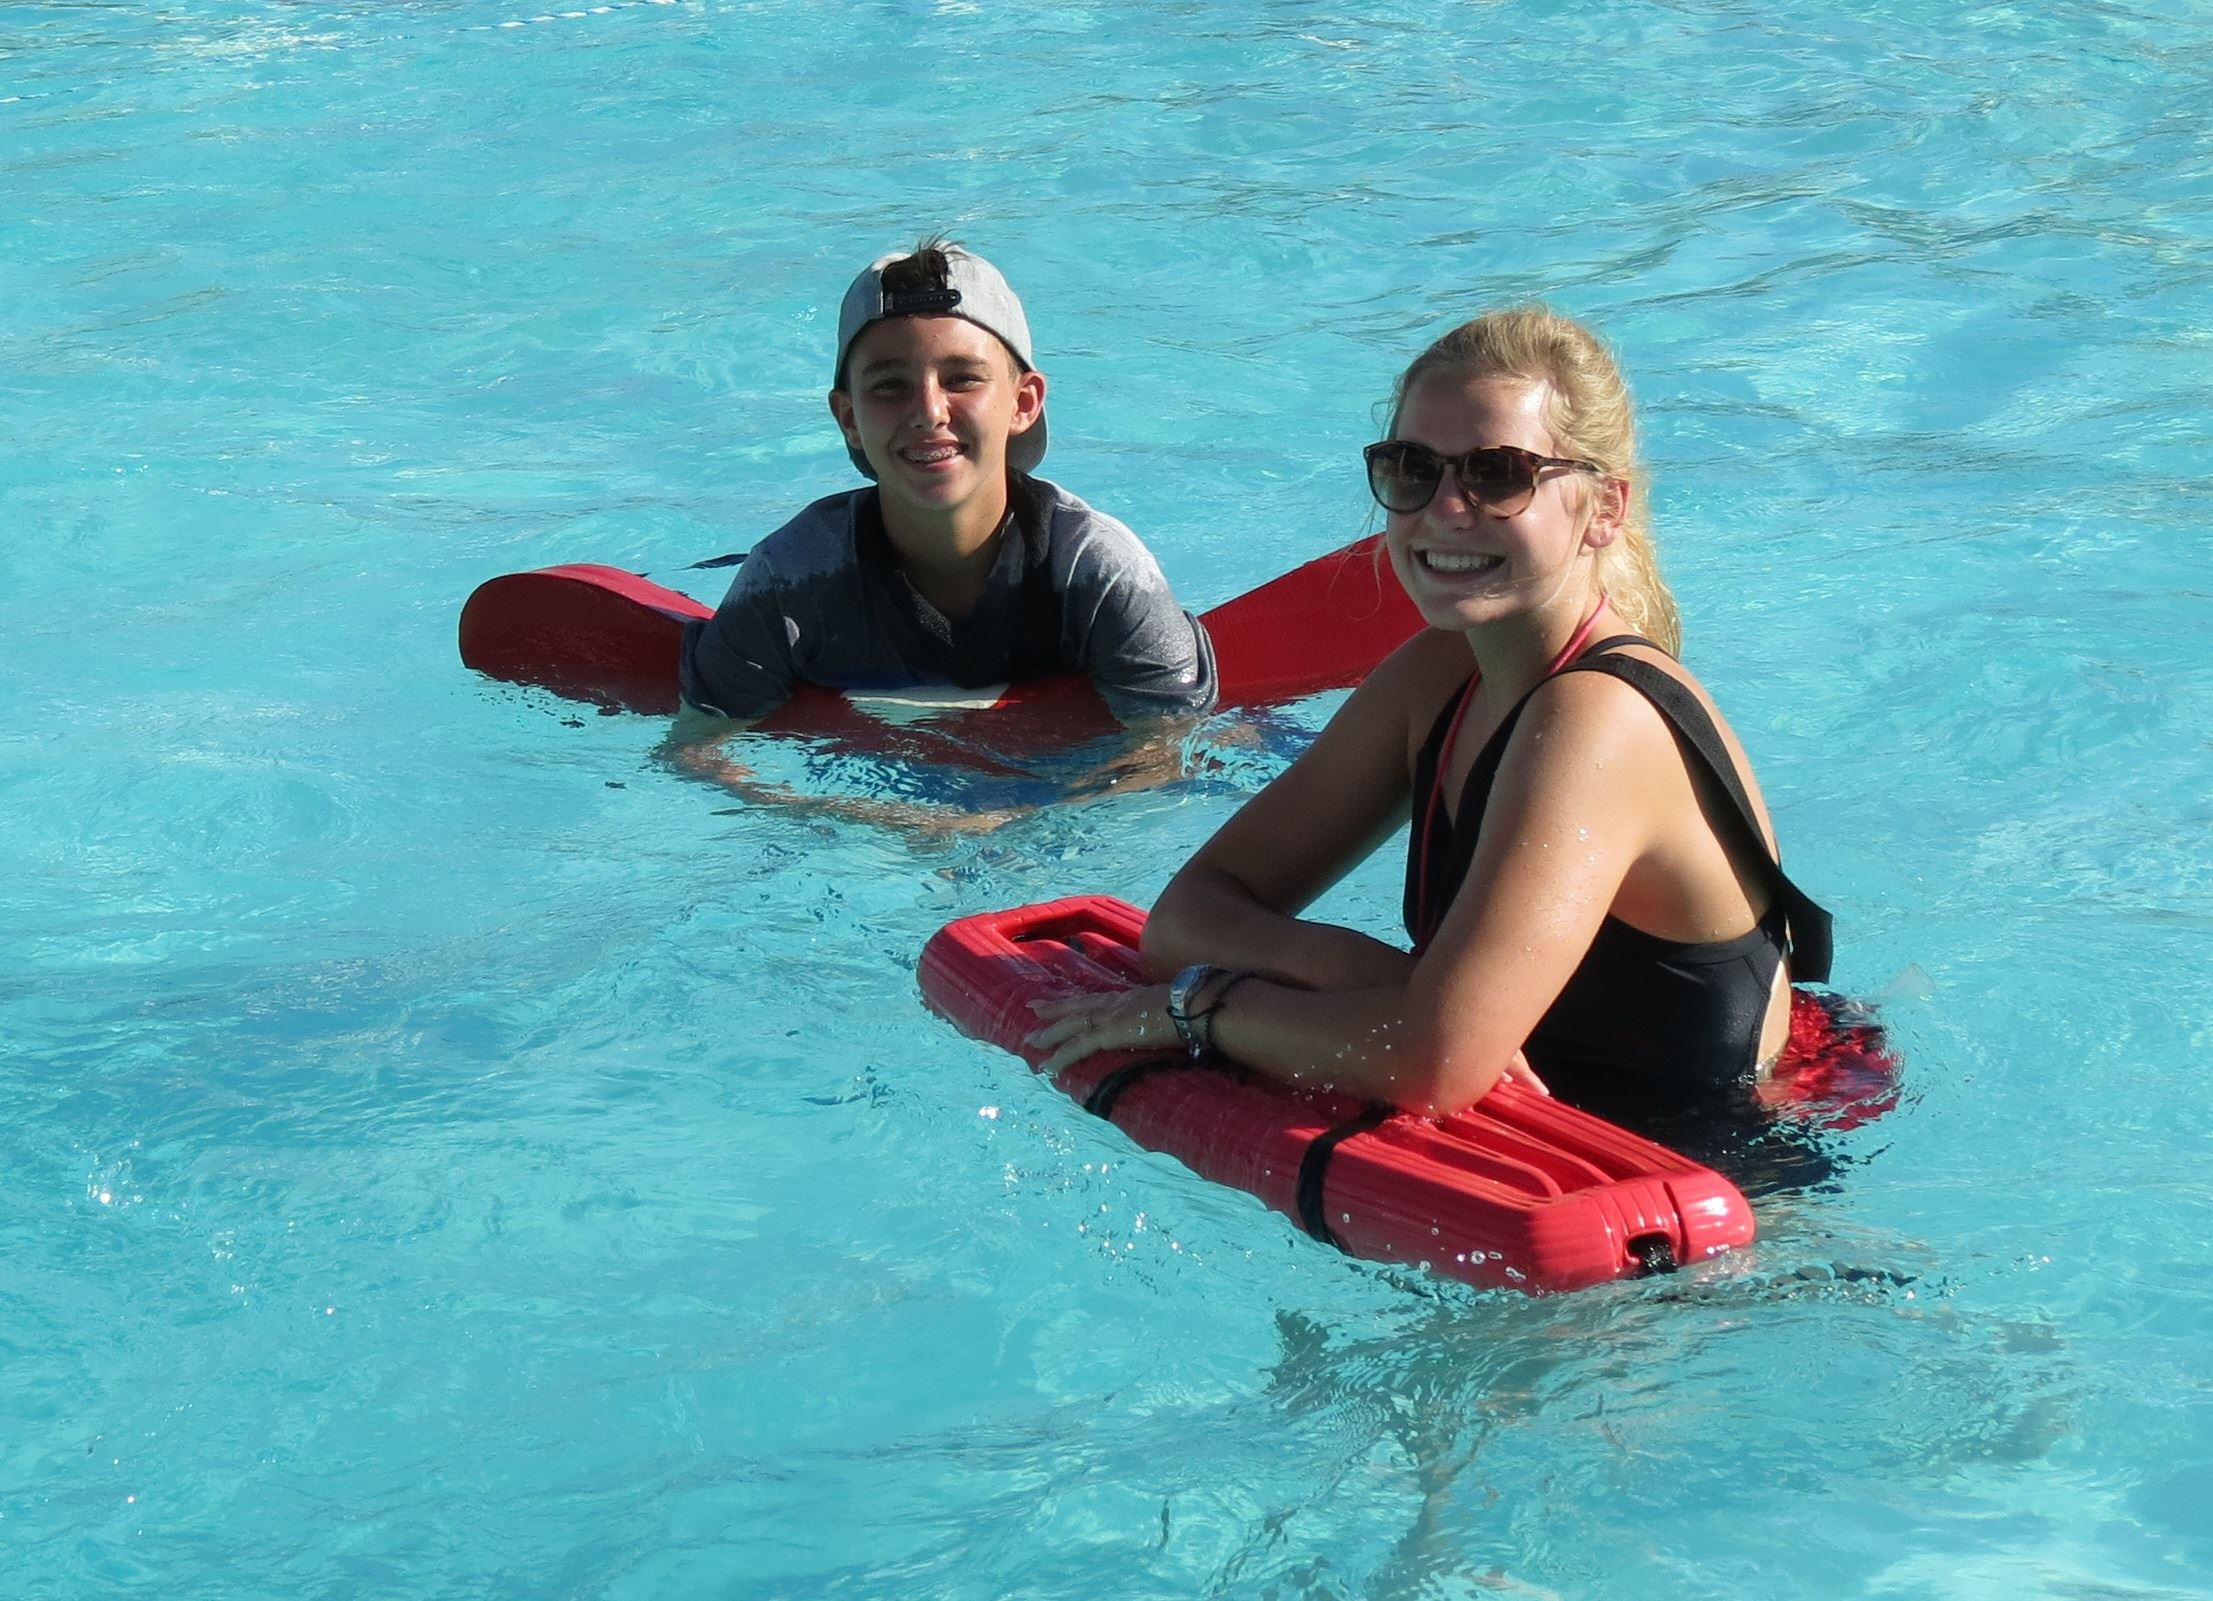 Junior Lifeguard and Water Safety Instructor Classes